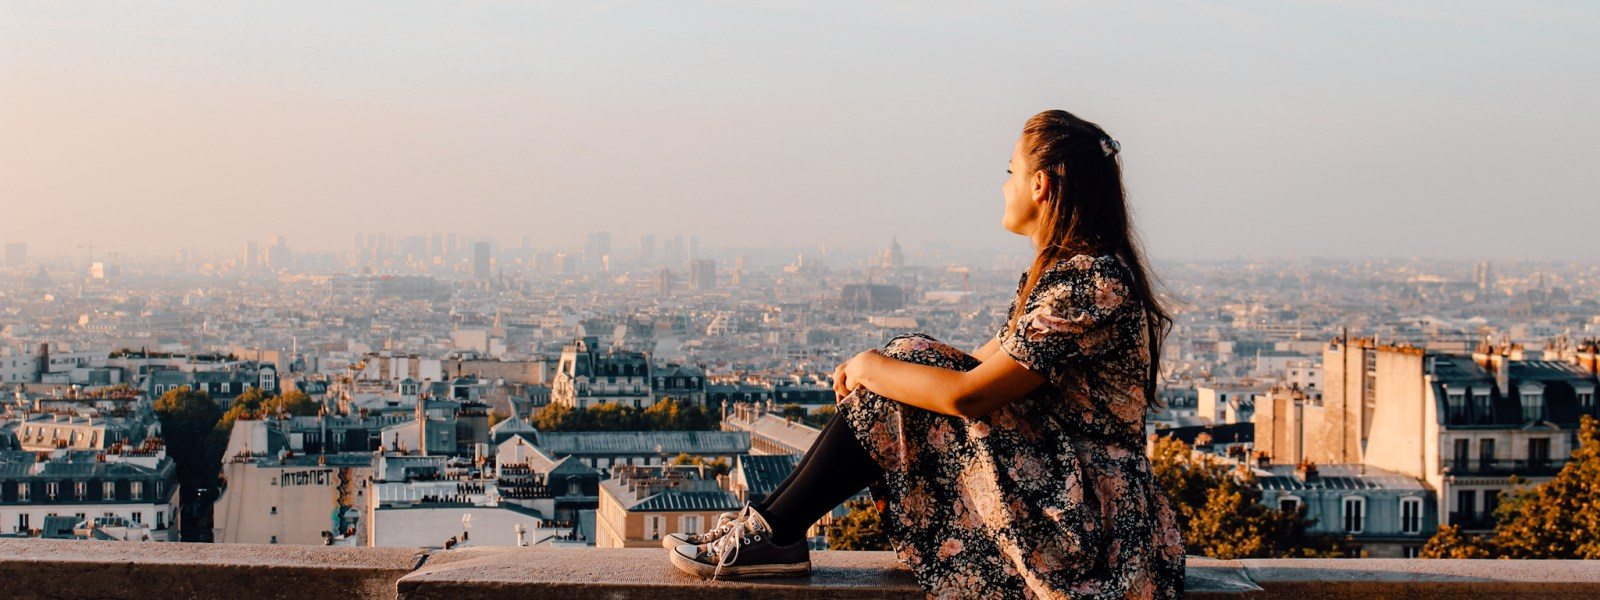 De meest fotogenieke en instagrammable spots in Parijs